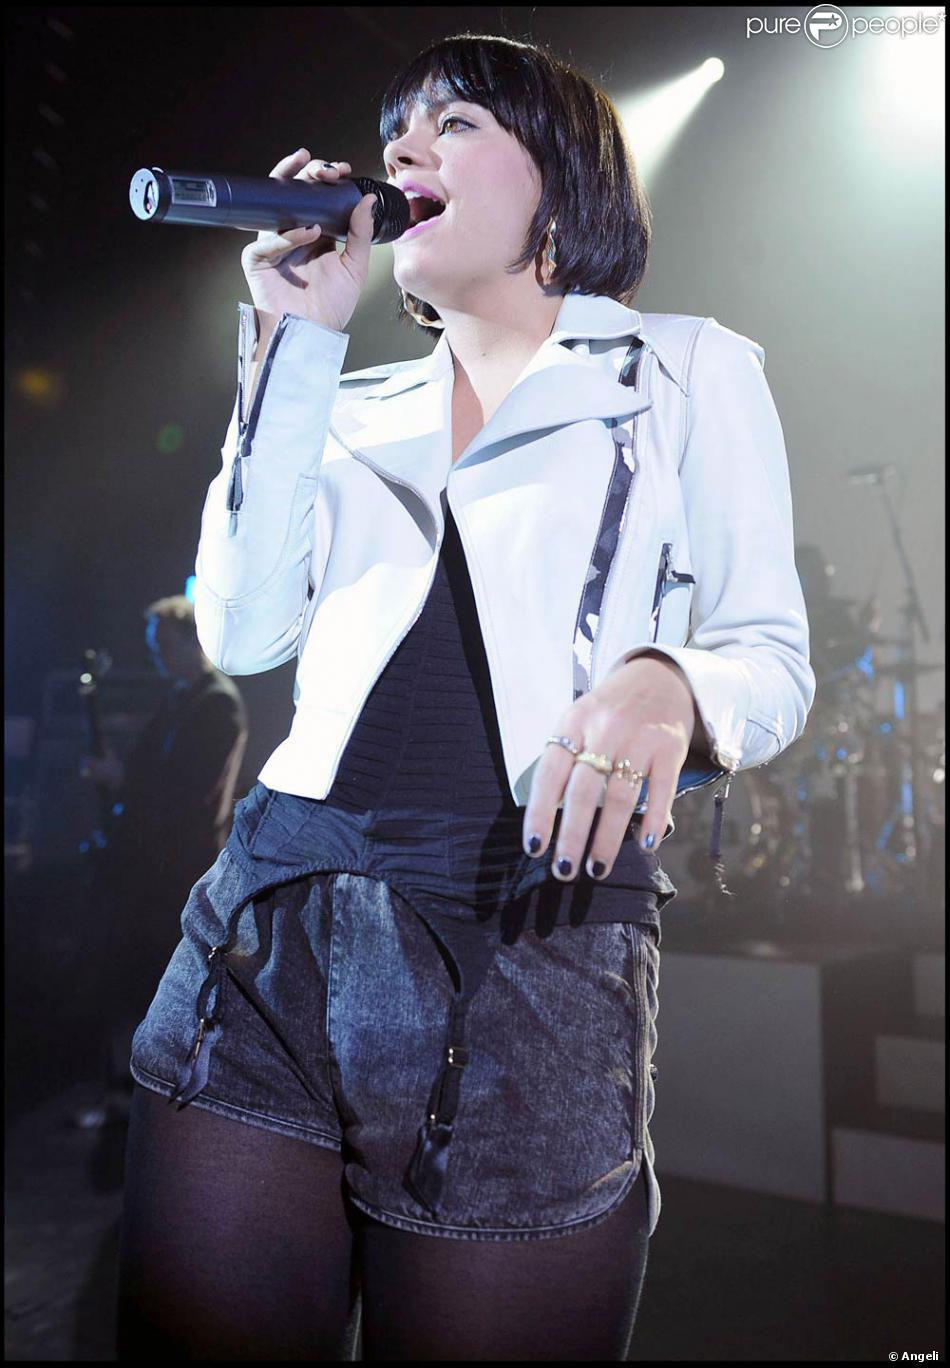 lily allen en tenue chic et choc sur sc ne londres le 26 mars 2009 purepeople. Black Bedroom Furniture Sets. Home Design Ideas